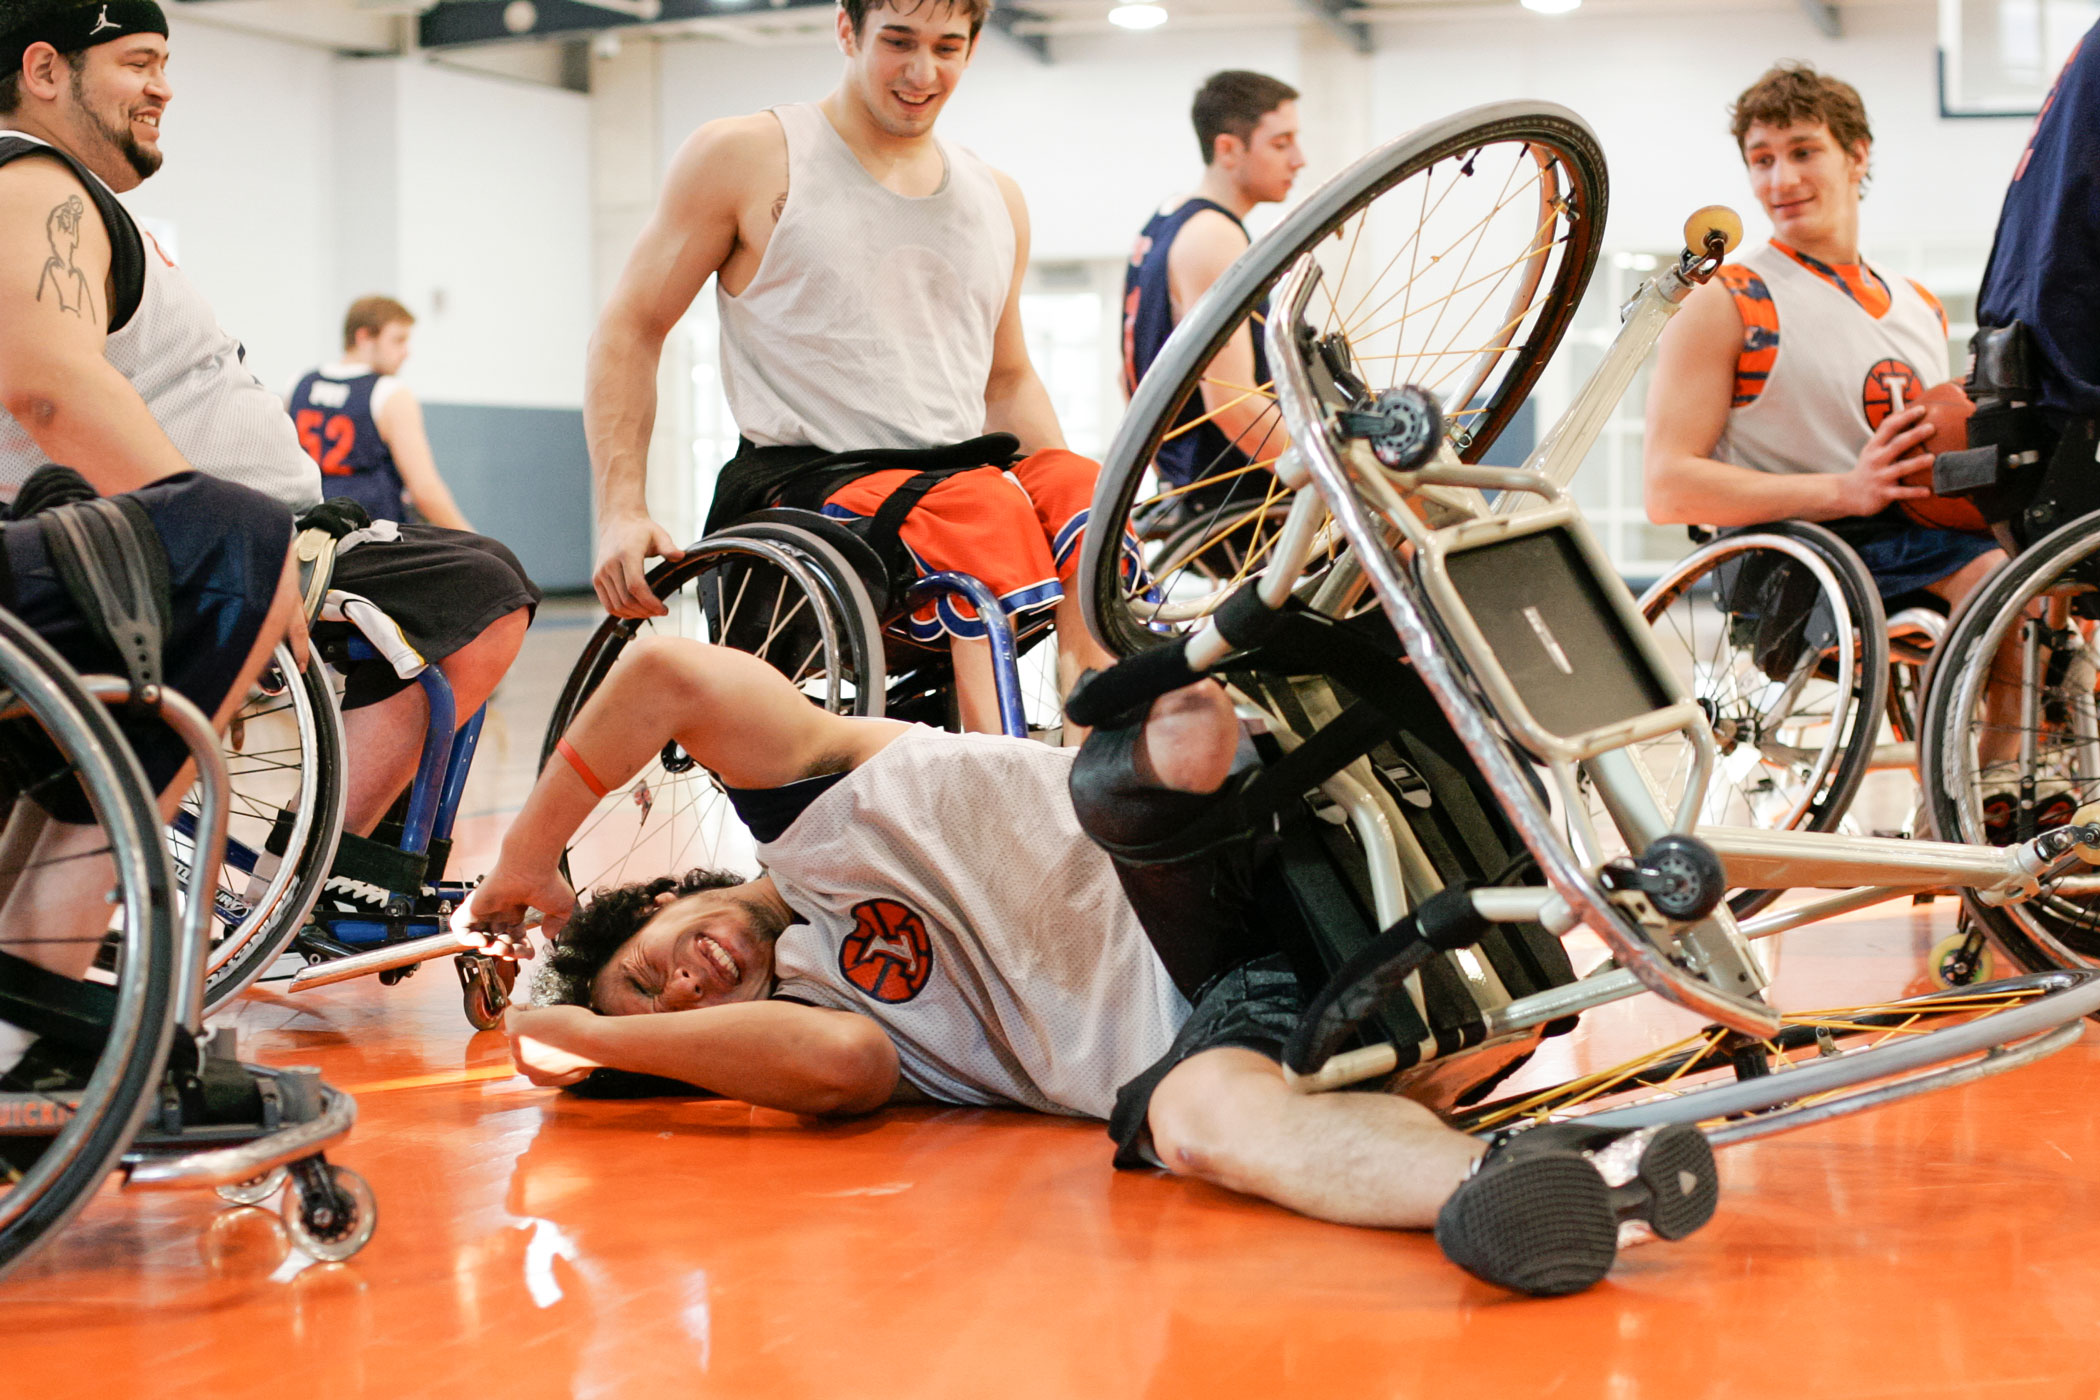 Wataru Horie, a player from Japan, grimaces and laughs with his teammates after falling over in his chair at practice. Frequently, players lose control of their chairs and fall, roll, or flip, but they can quickly push themselves up again and resume playing.